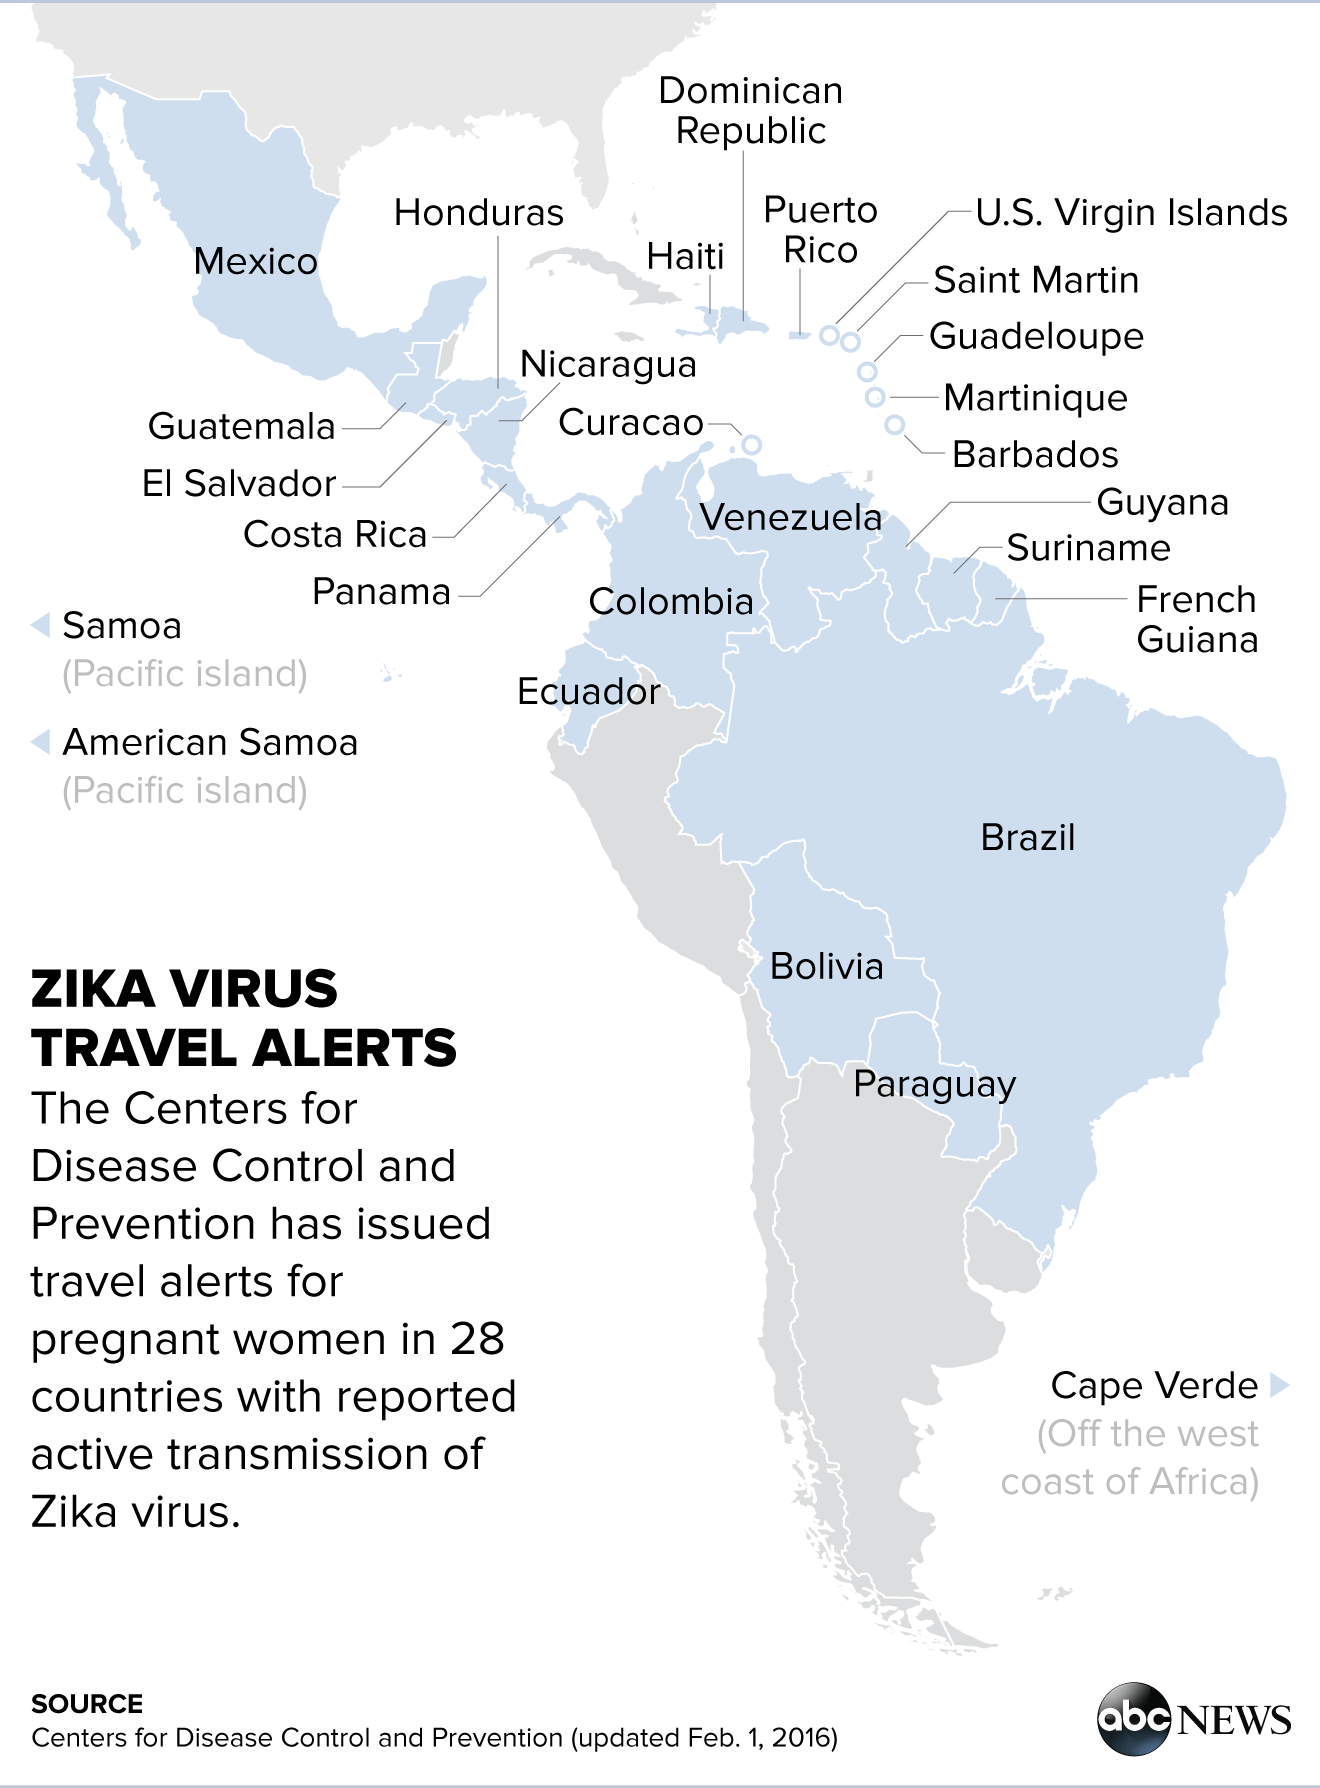 Zika Virus Travel Alerts Travel Advisory  411TravelBuysca